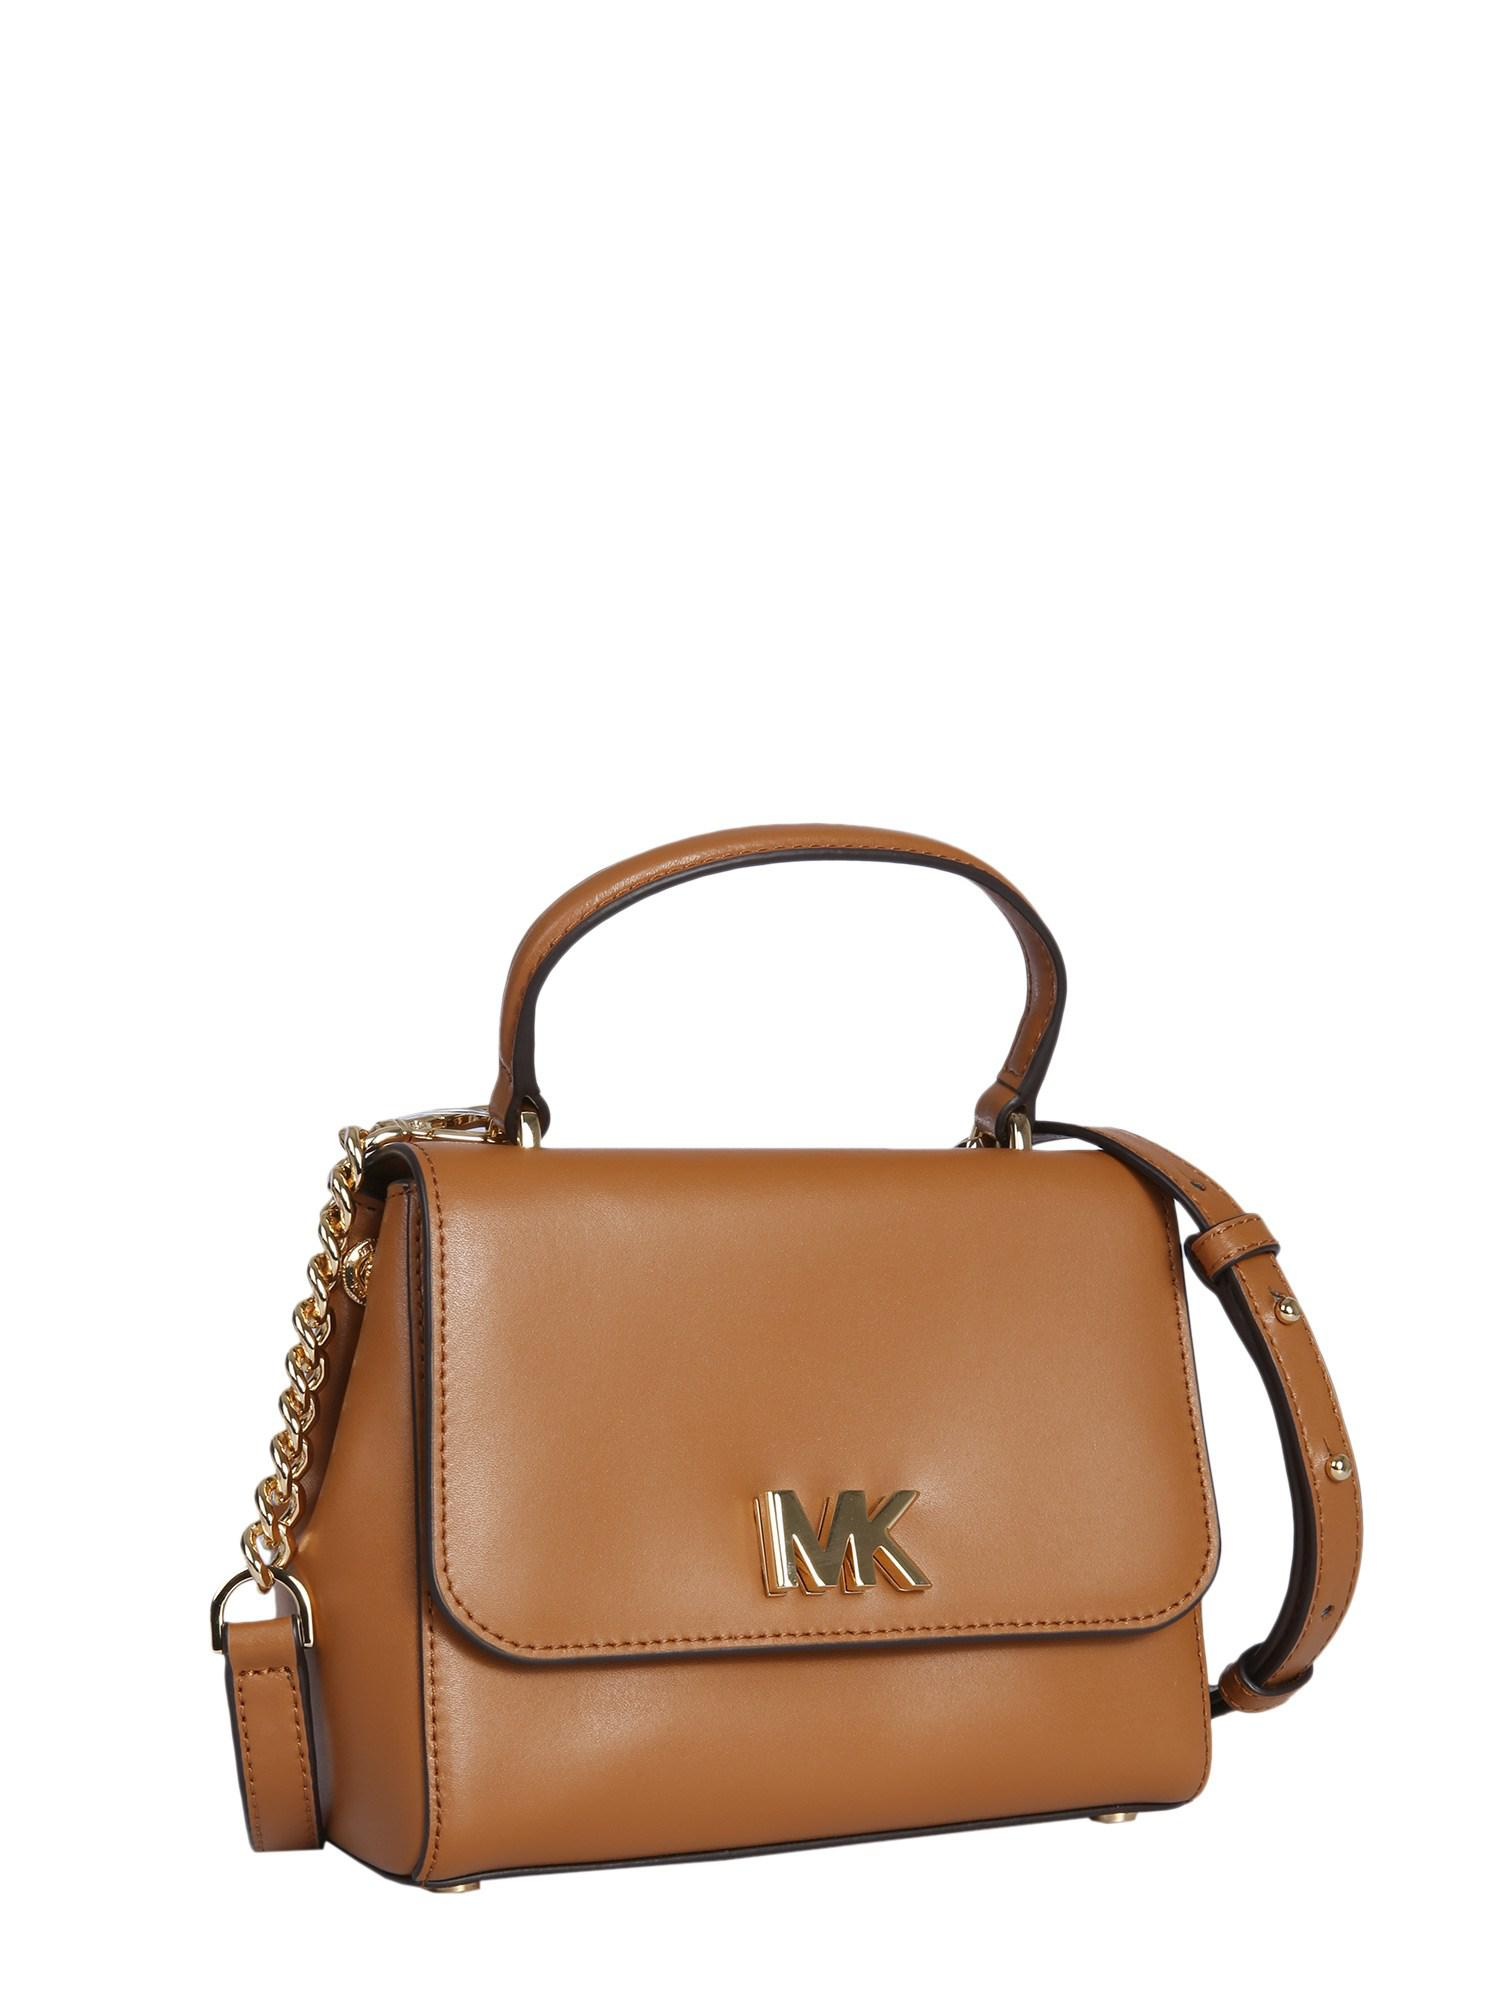 MICHAEL Michael Kors - Brown Small Mott Leather Bag - Lyst. View fullscreen 1b7602da9d6bd